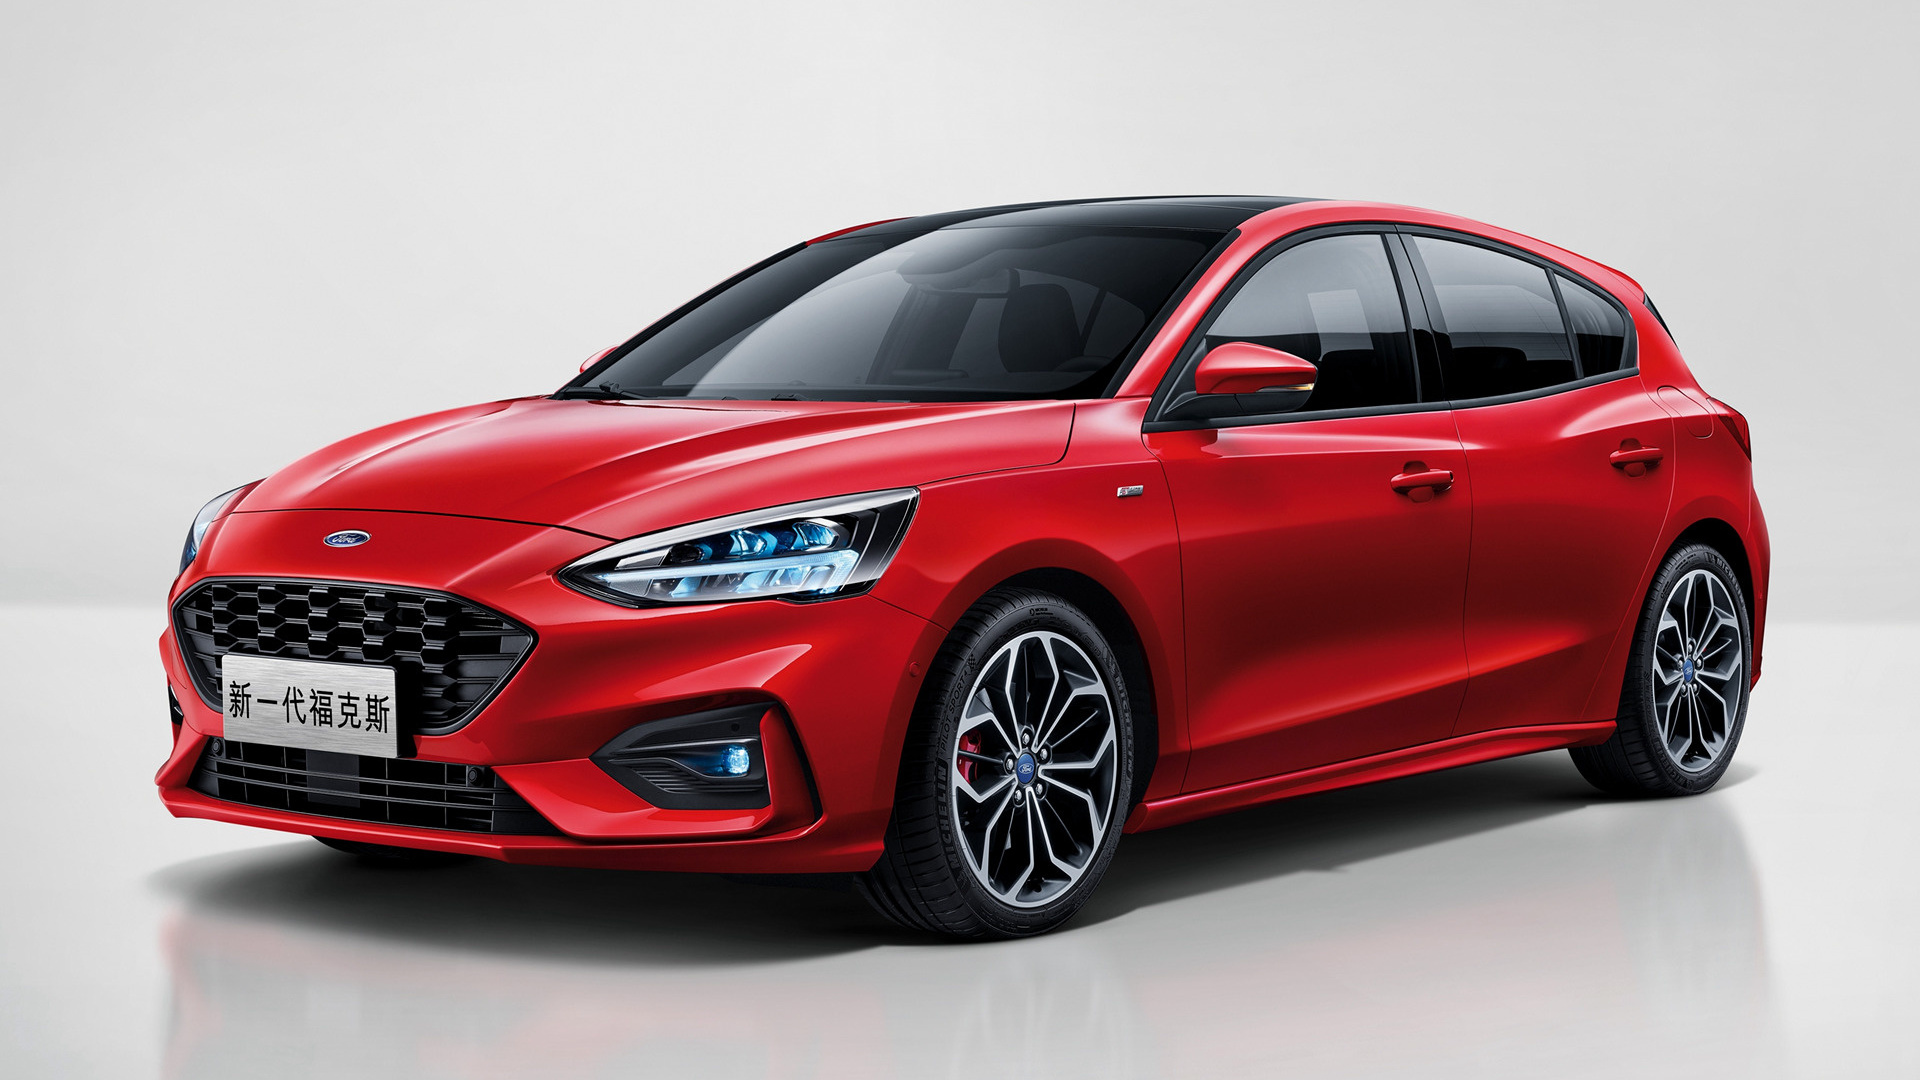 2018 ford focus st line cn wallpapers and hd images. Black Bedroom Furniture Sets. Home Design Ideas